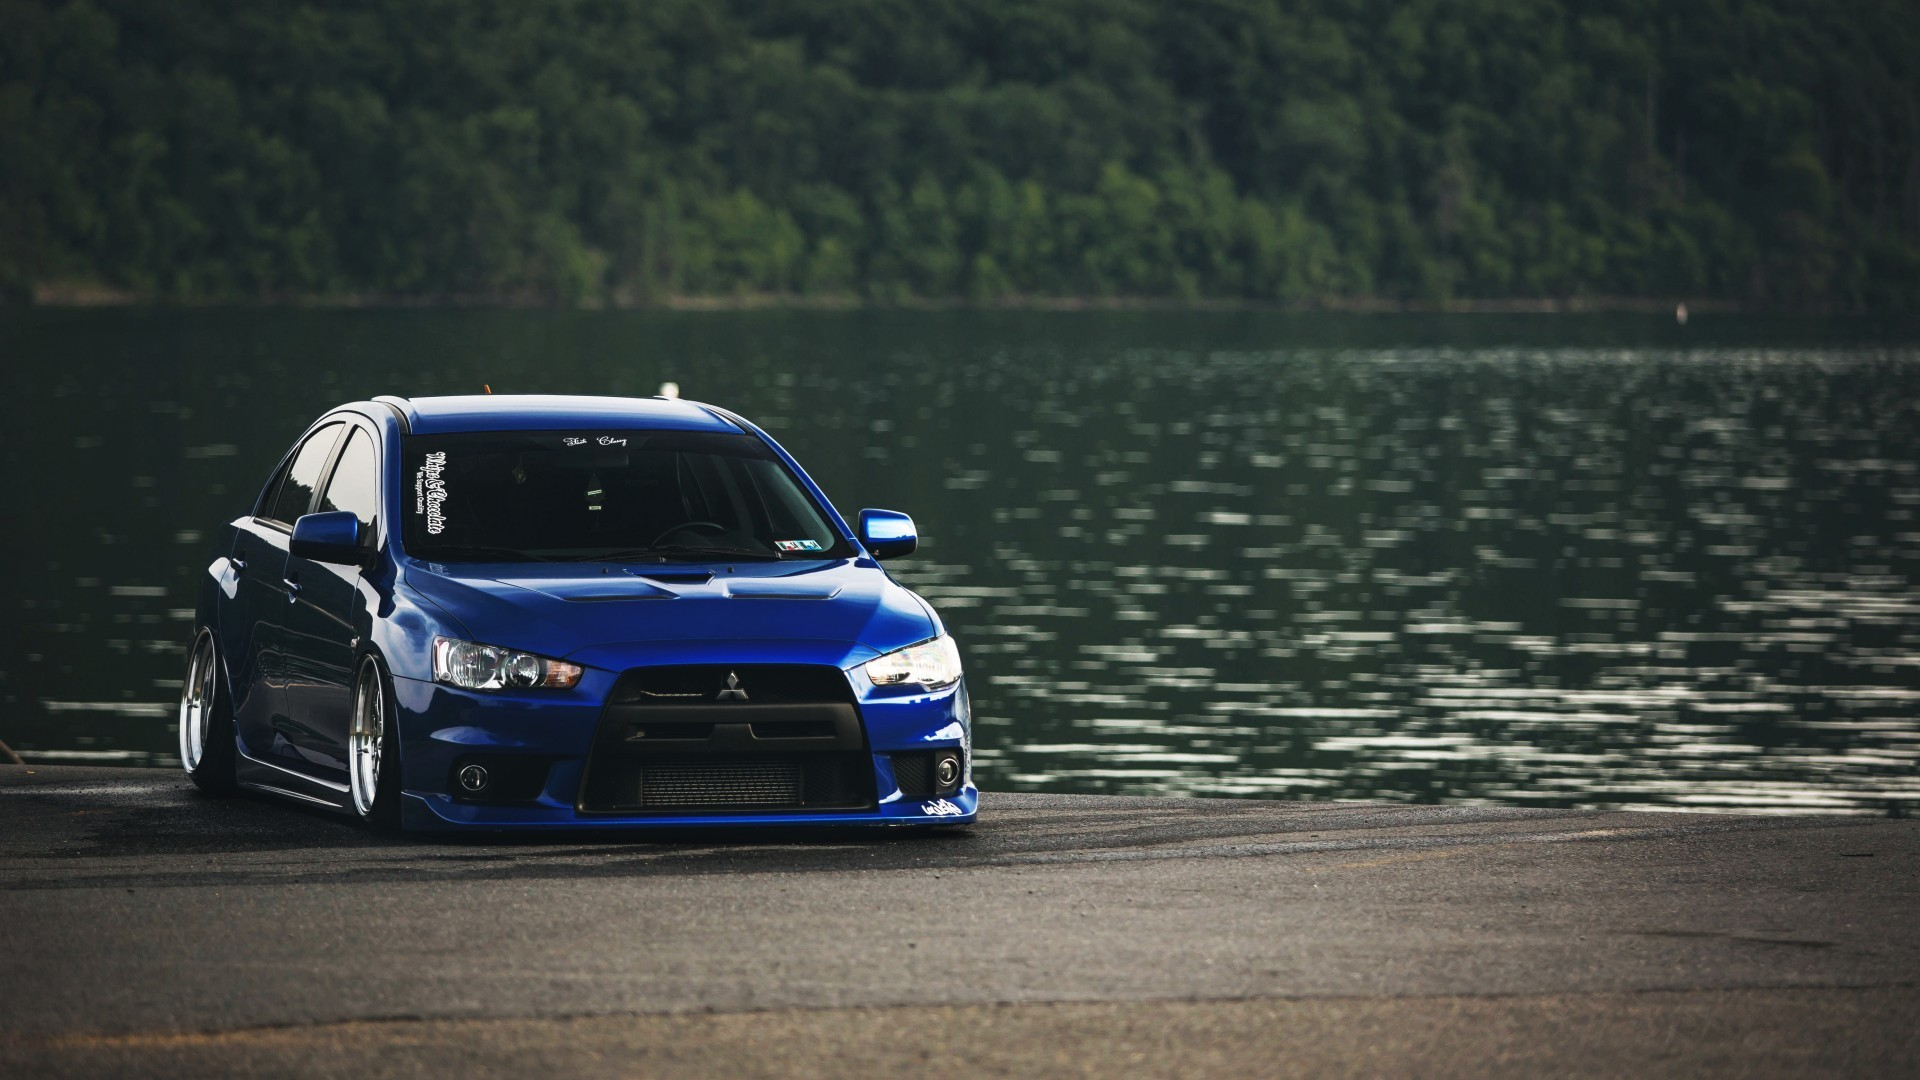 1920x1080 Mistubishi Mitsubishi Mitsubishi Lancer Evolution X cars lakes wallpaper  (#3032032) / Wallbase.